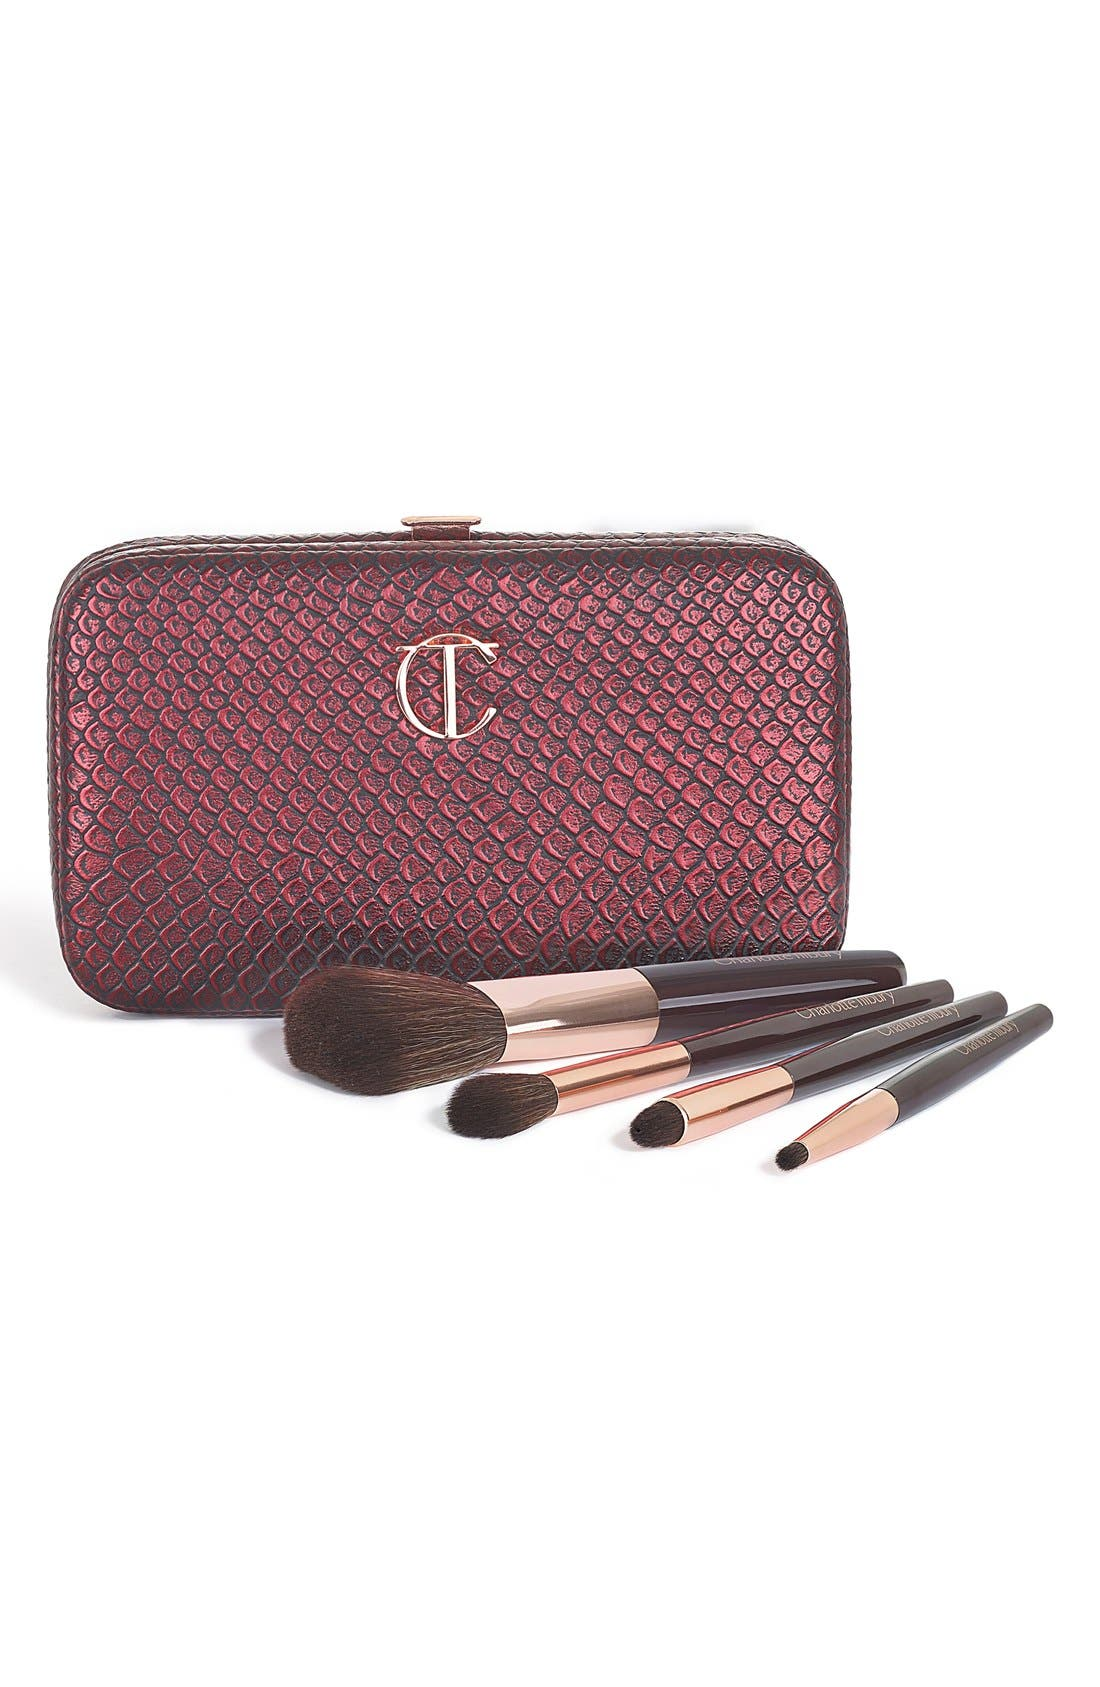 Charlotte Tilbury 'Magical Mini Brush' Set (Limited Edition) ($72 Value)